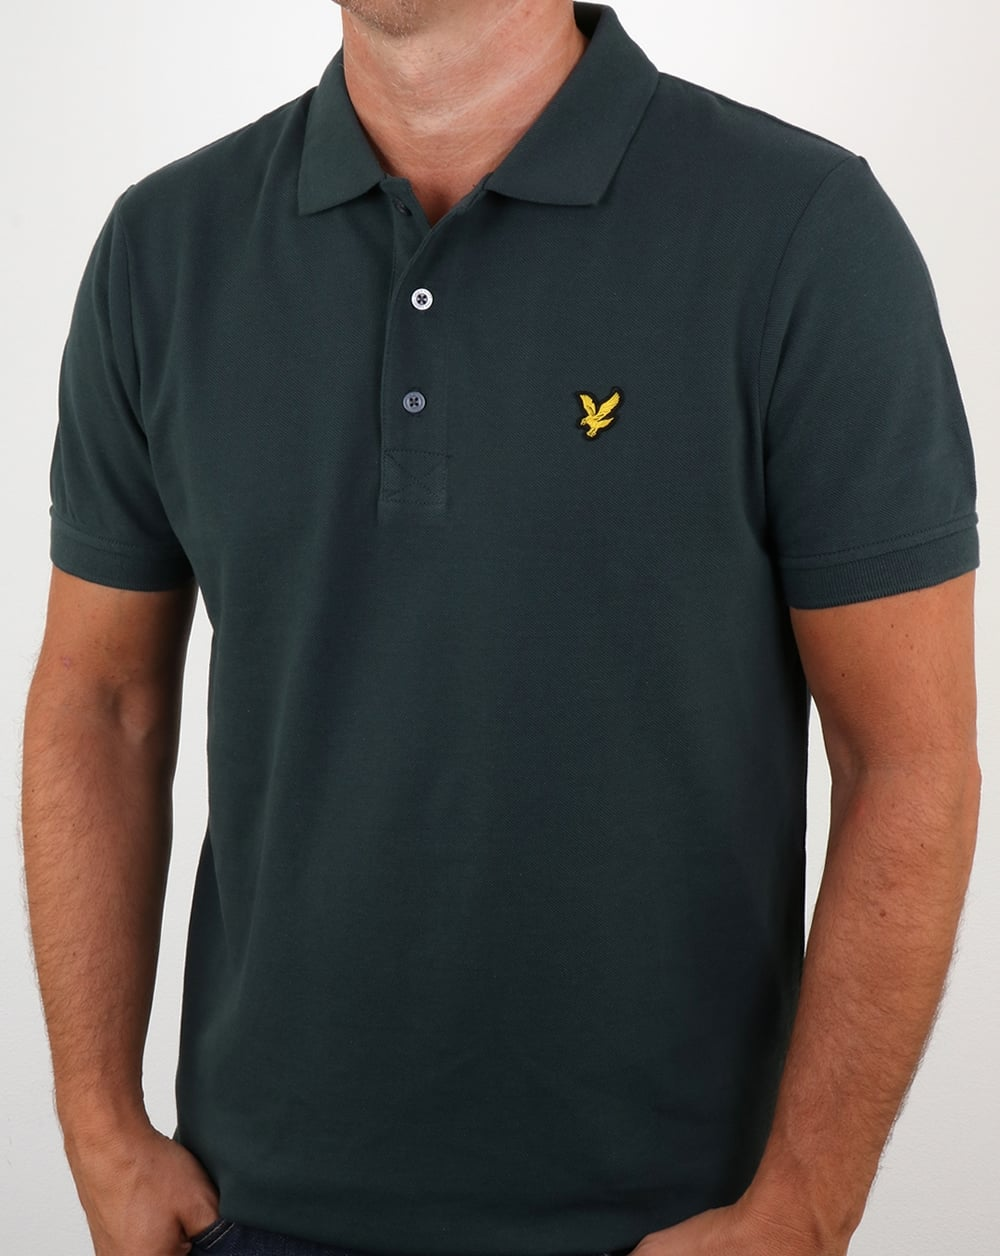 Lyle and scott polo shirt forest green short sleeve cotton for Forest green polo shirts